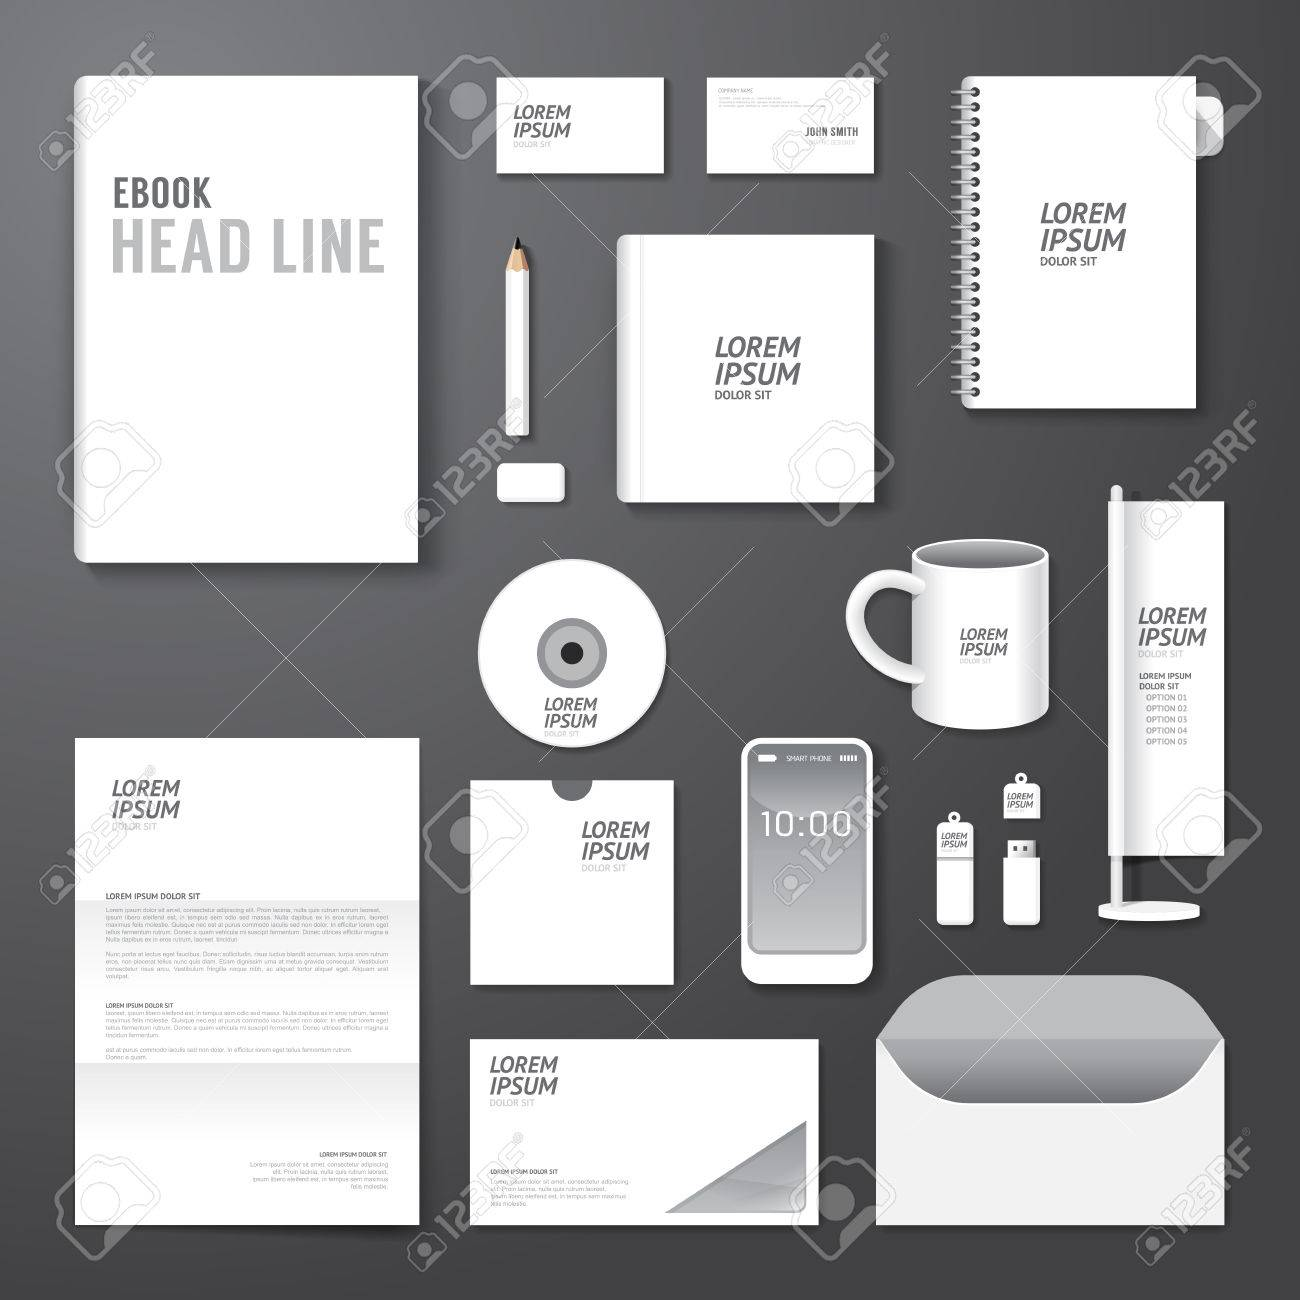 Poster design layout - Vector Vector Brochure Flyer Magazine Cover Booklet Poster Design Template Layout Blank Business Stationery Annual Report A4 Size Set Of Corporate